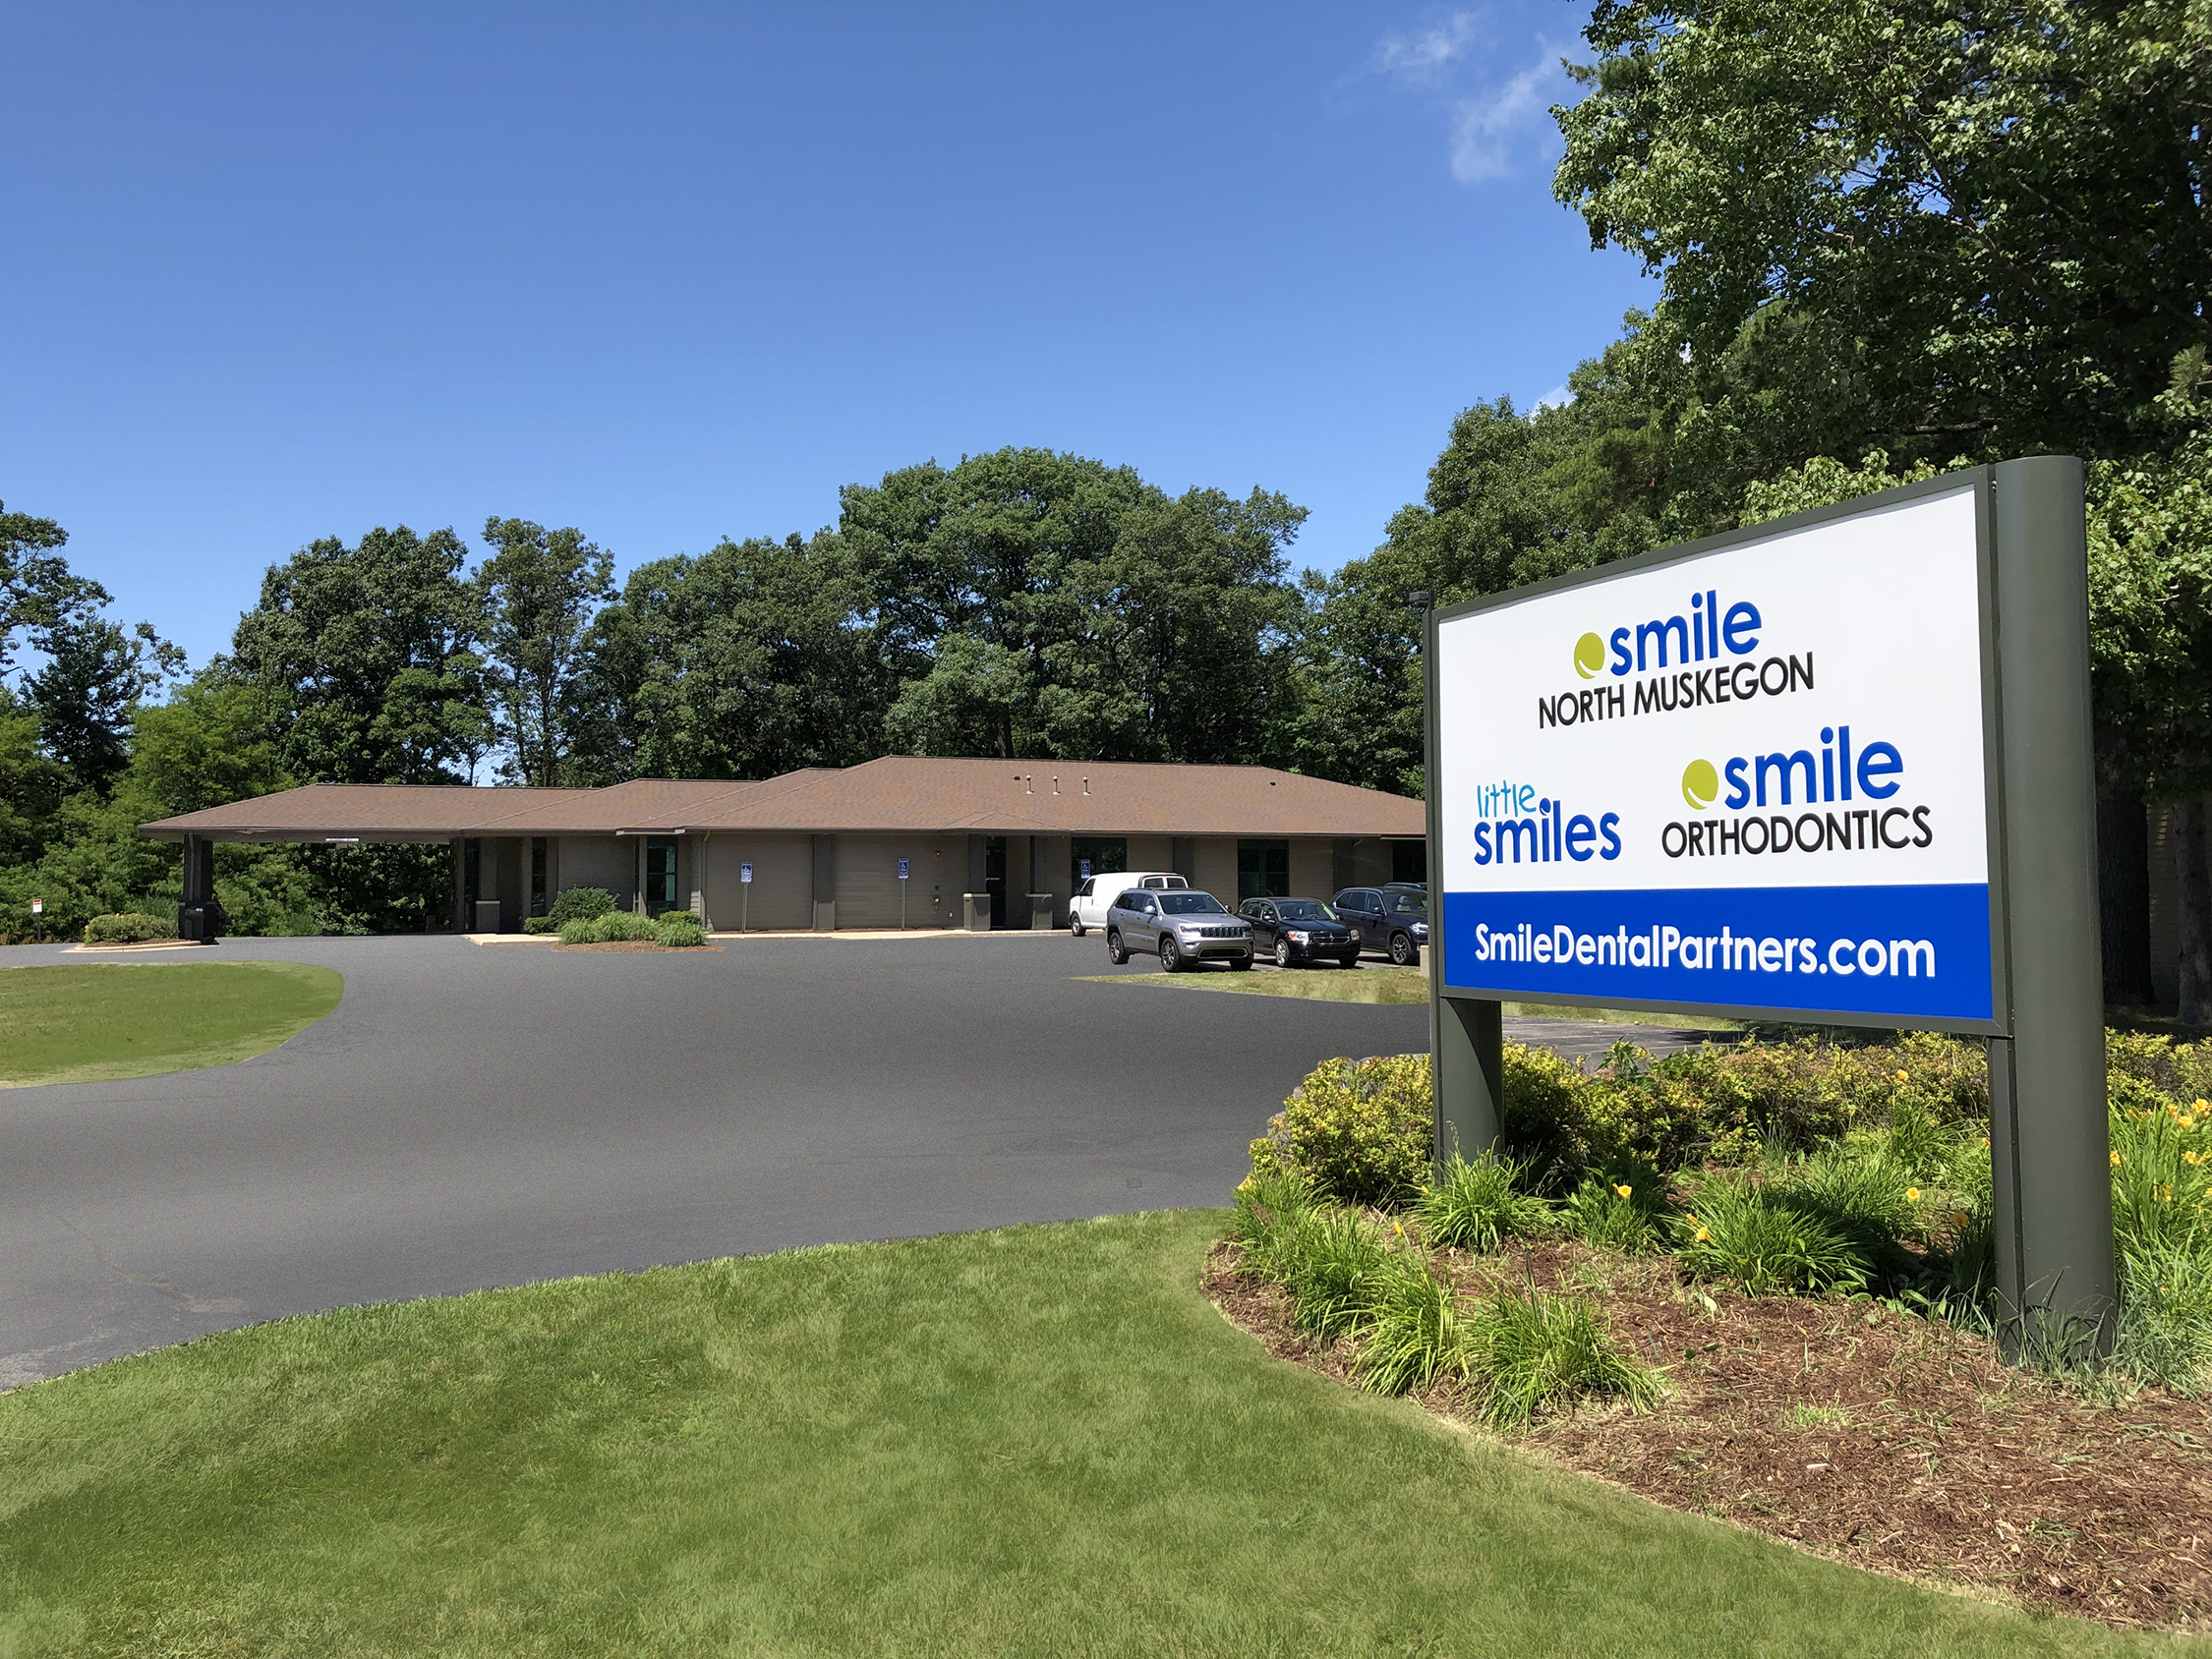 Smile North Muskegon